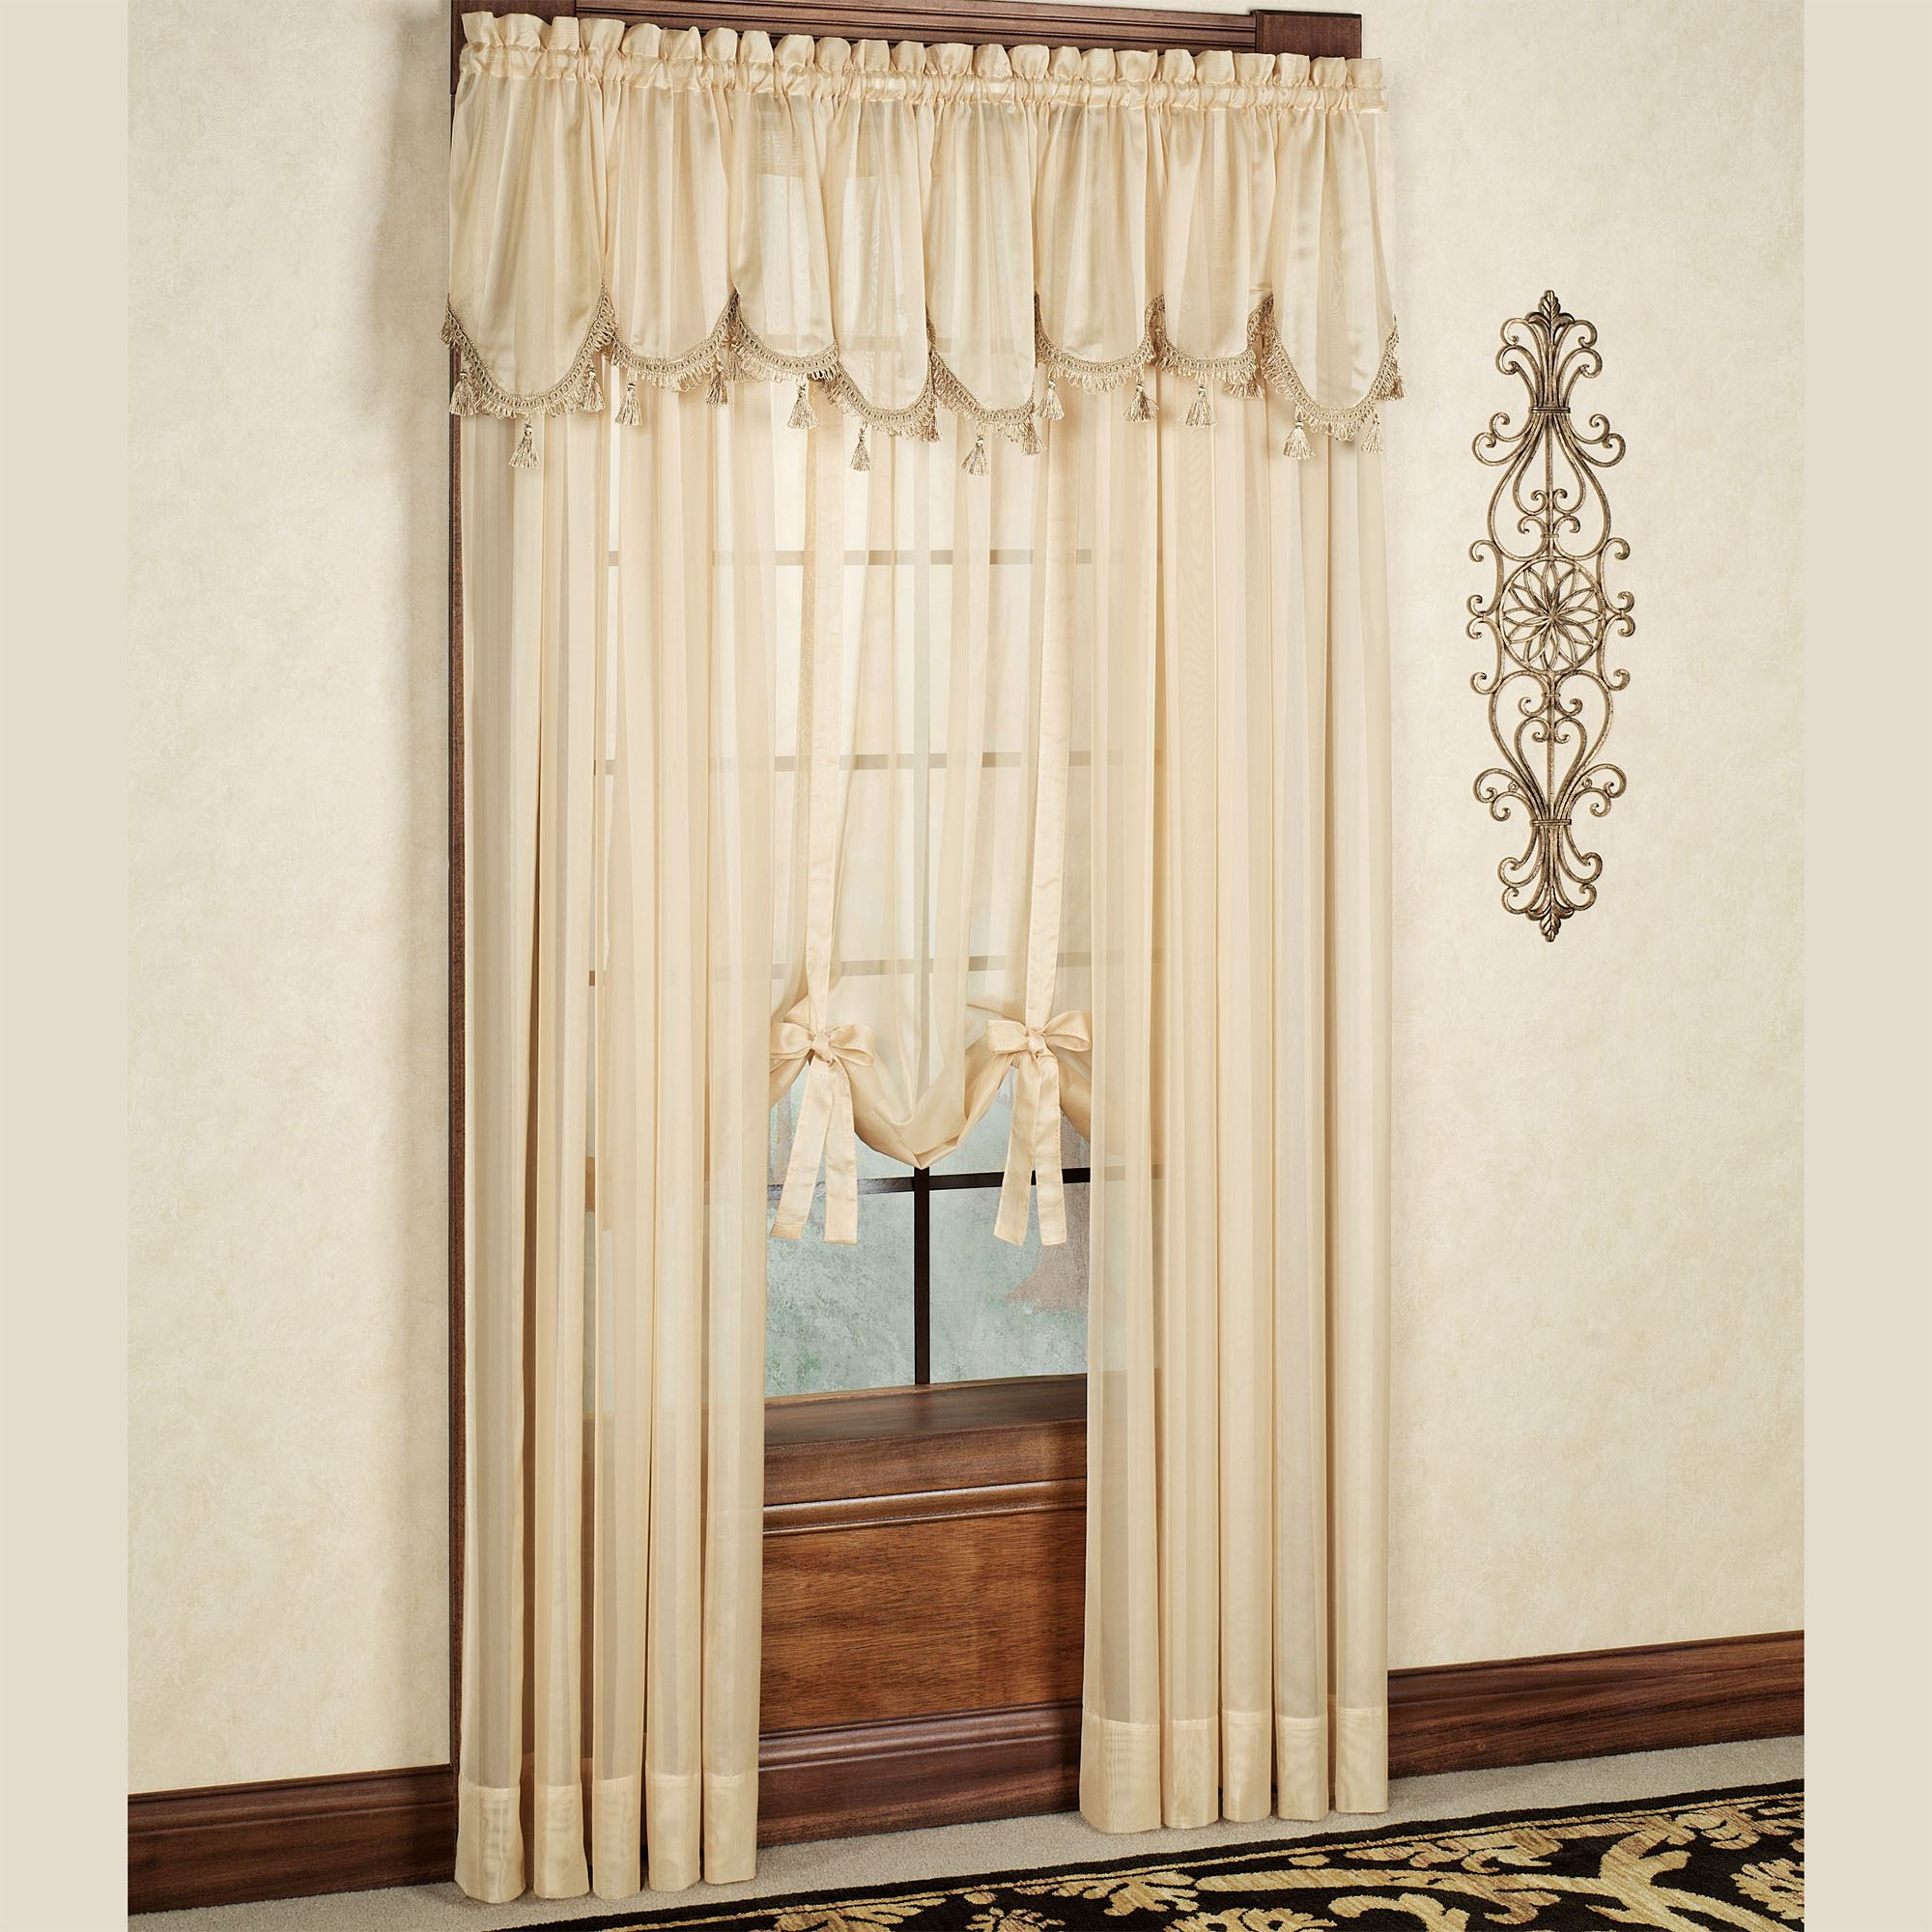 product pipe rod over shipping wraparound garden orders on steel free overstock instyledesign diameter adjustable inch curtain blackout curtains modern home